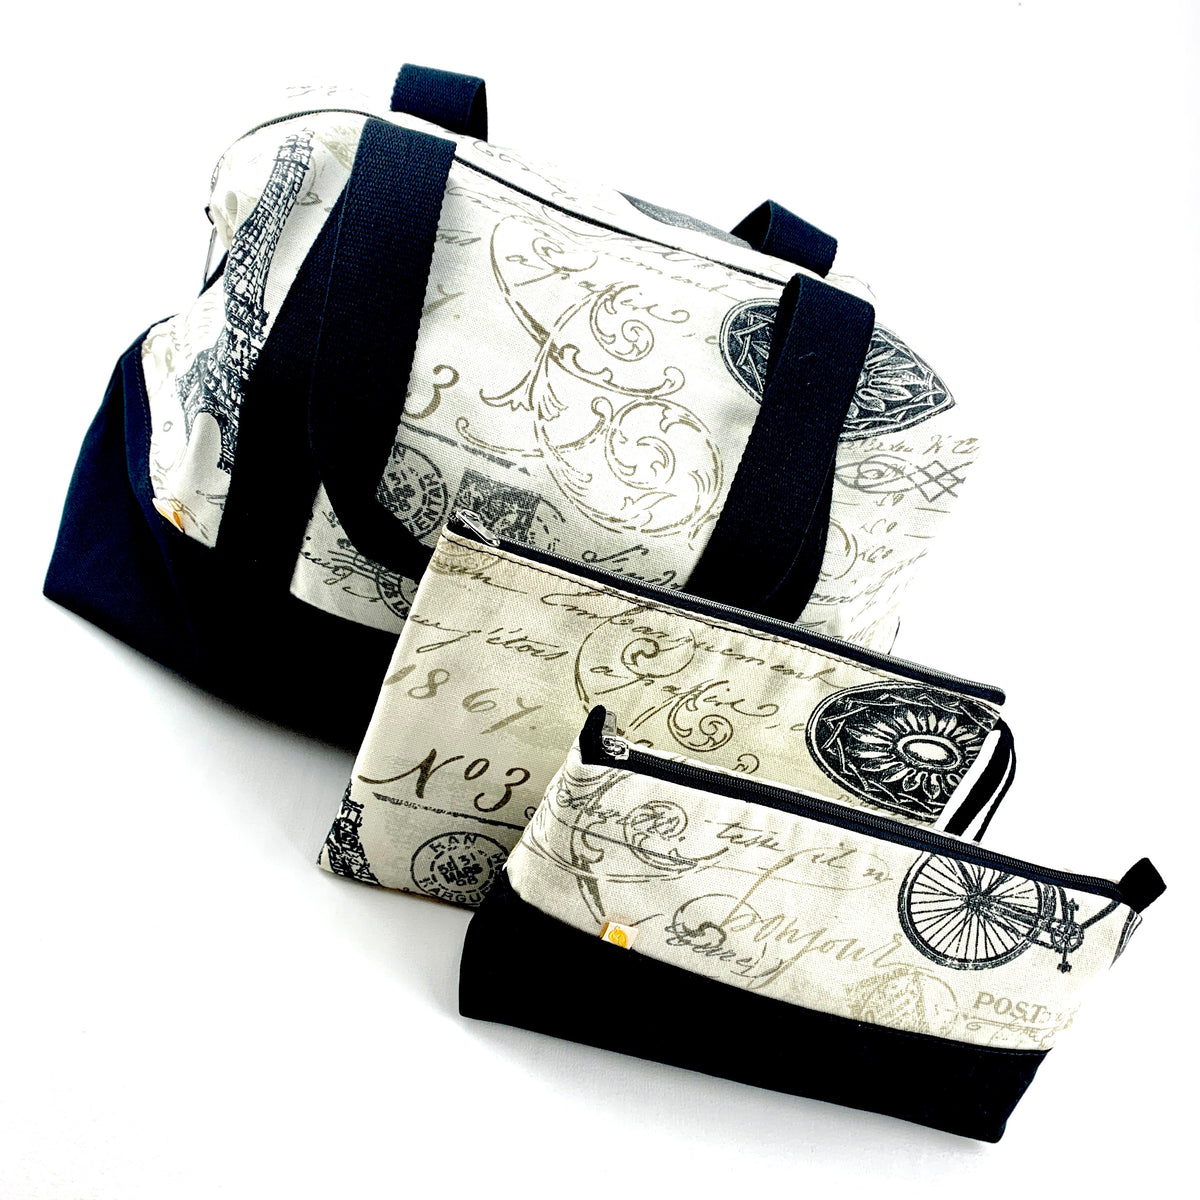 New limited edition. Sets created for light travels. Tote bag with zipper, toiletry bag and a pouch for $49. Shop Now.